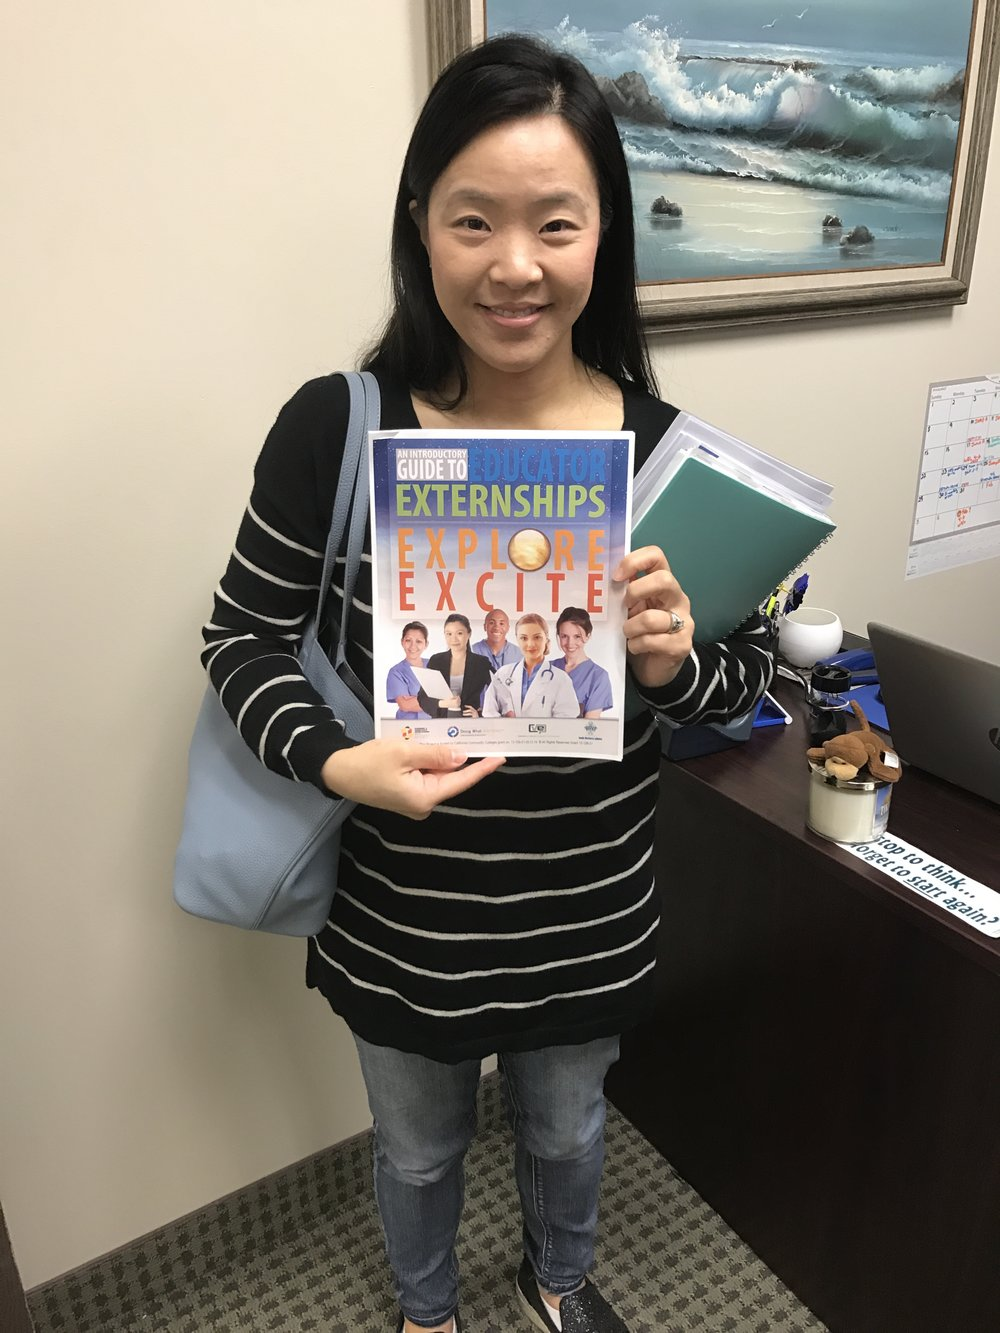 Teacher, Grace Chung during her externship.